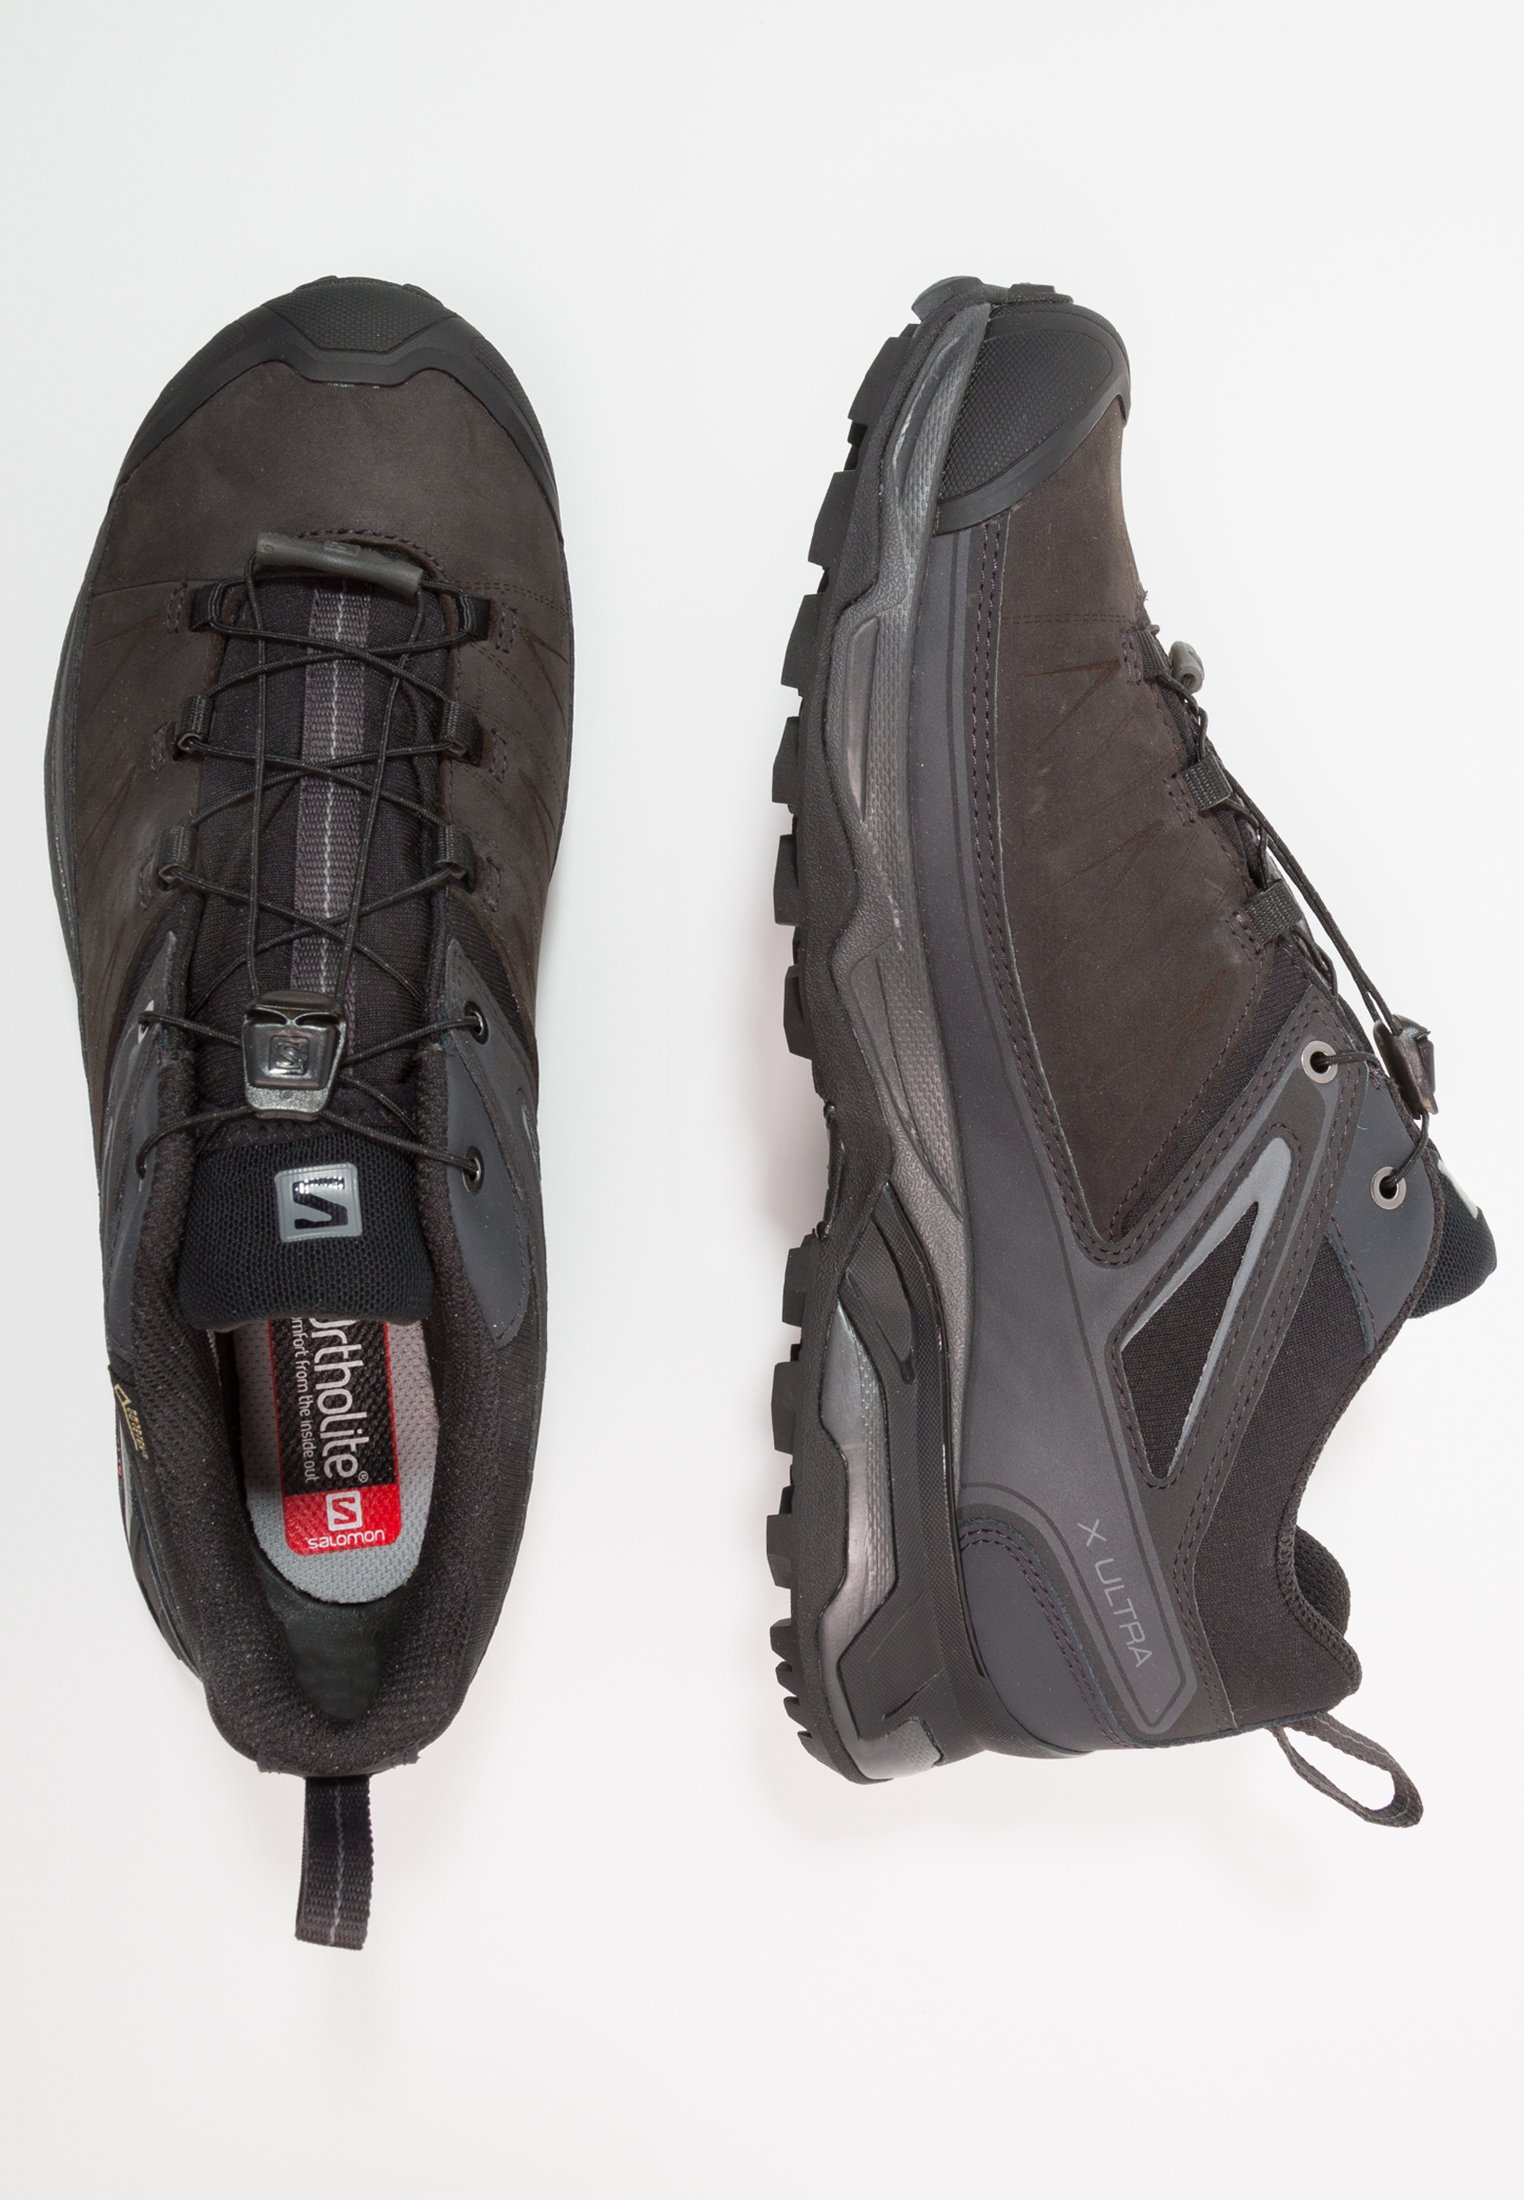 Salomon X ULTRA 3 GTX Fjellsko blackmagnetquiet shade